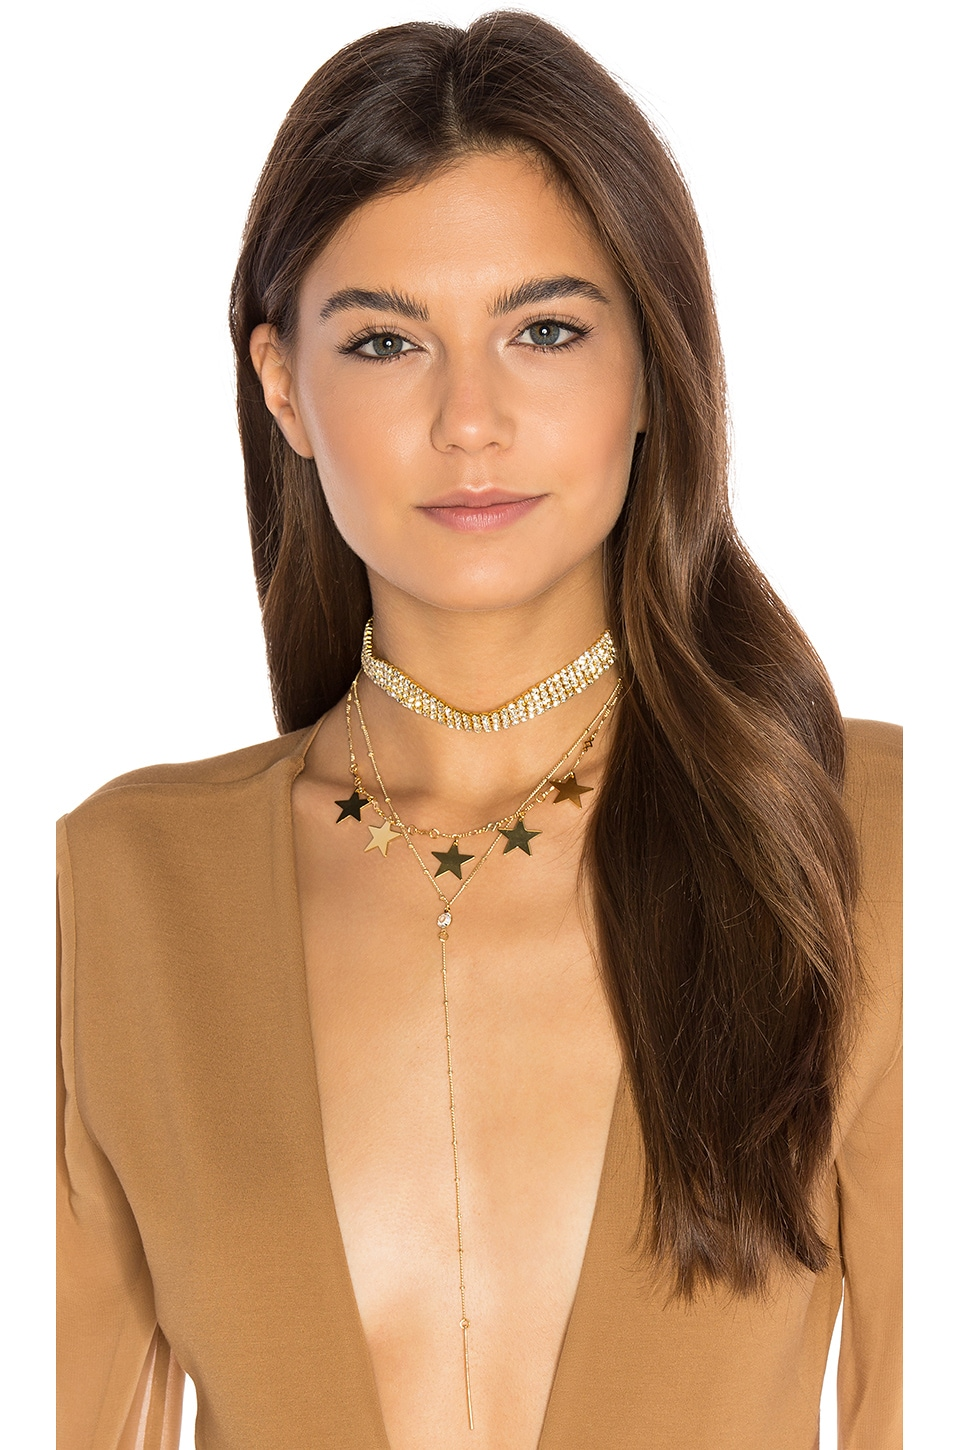 Disco Queen Layer Necklace by Frasier Sterling